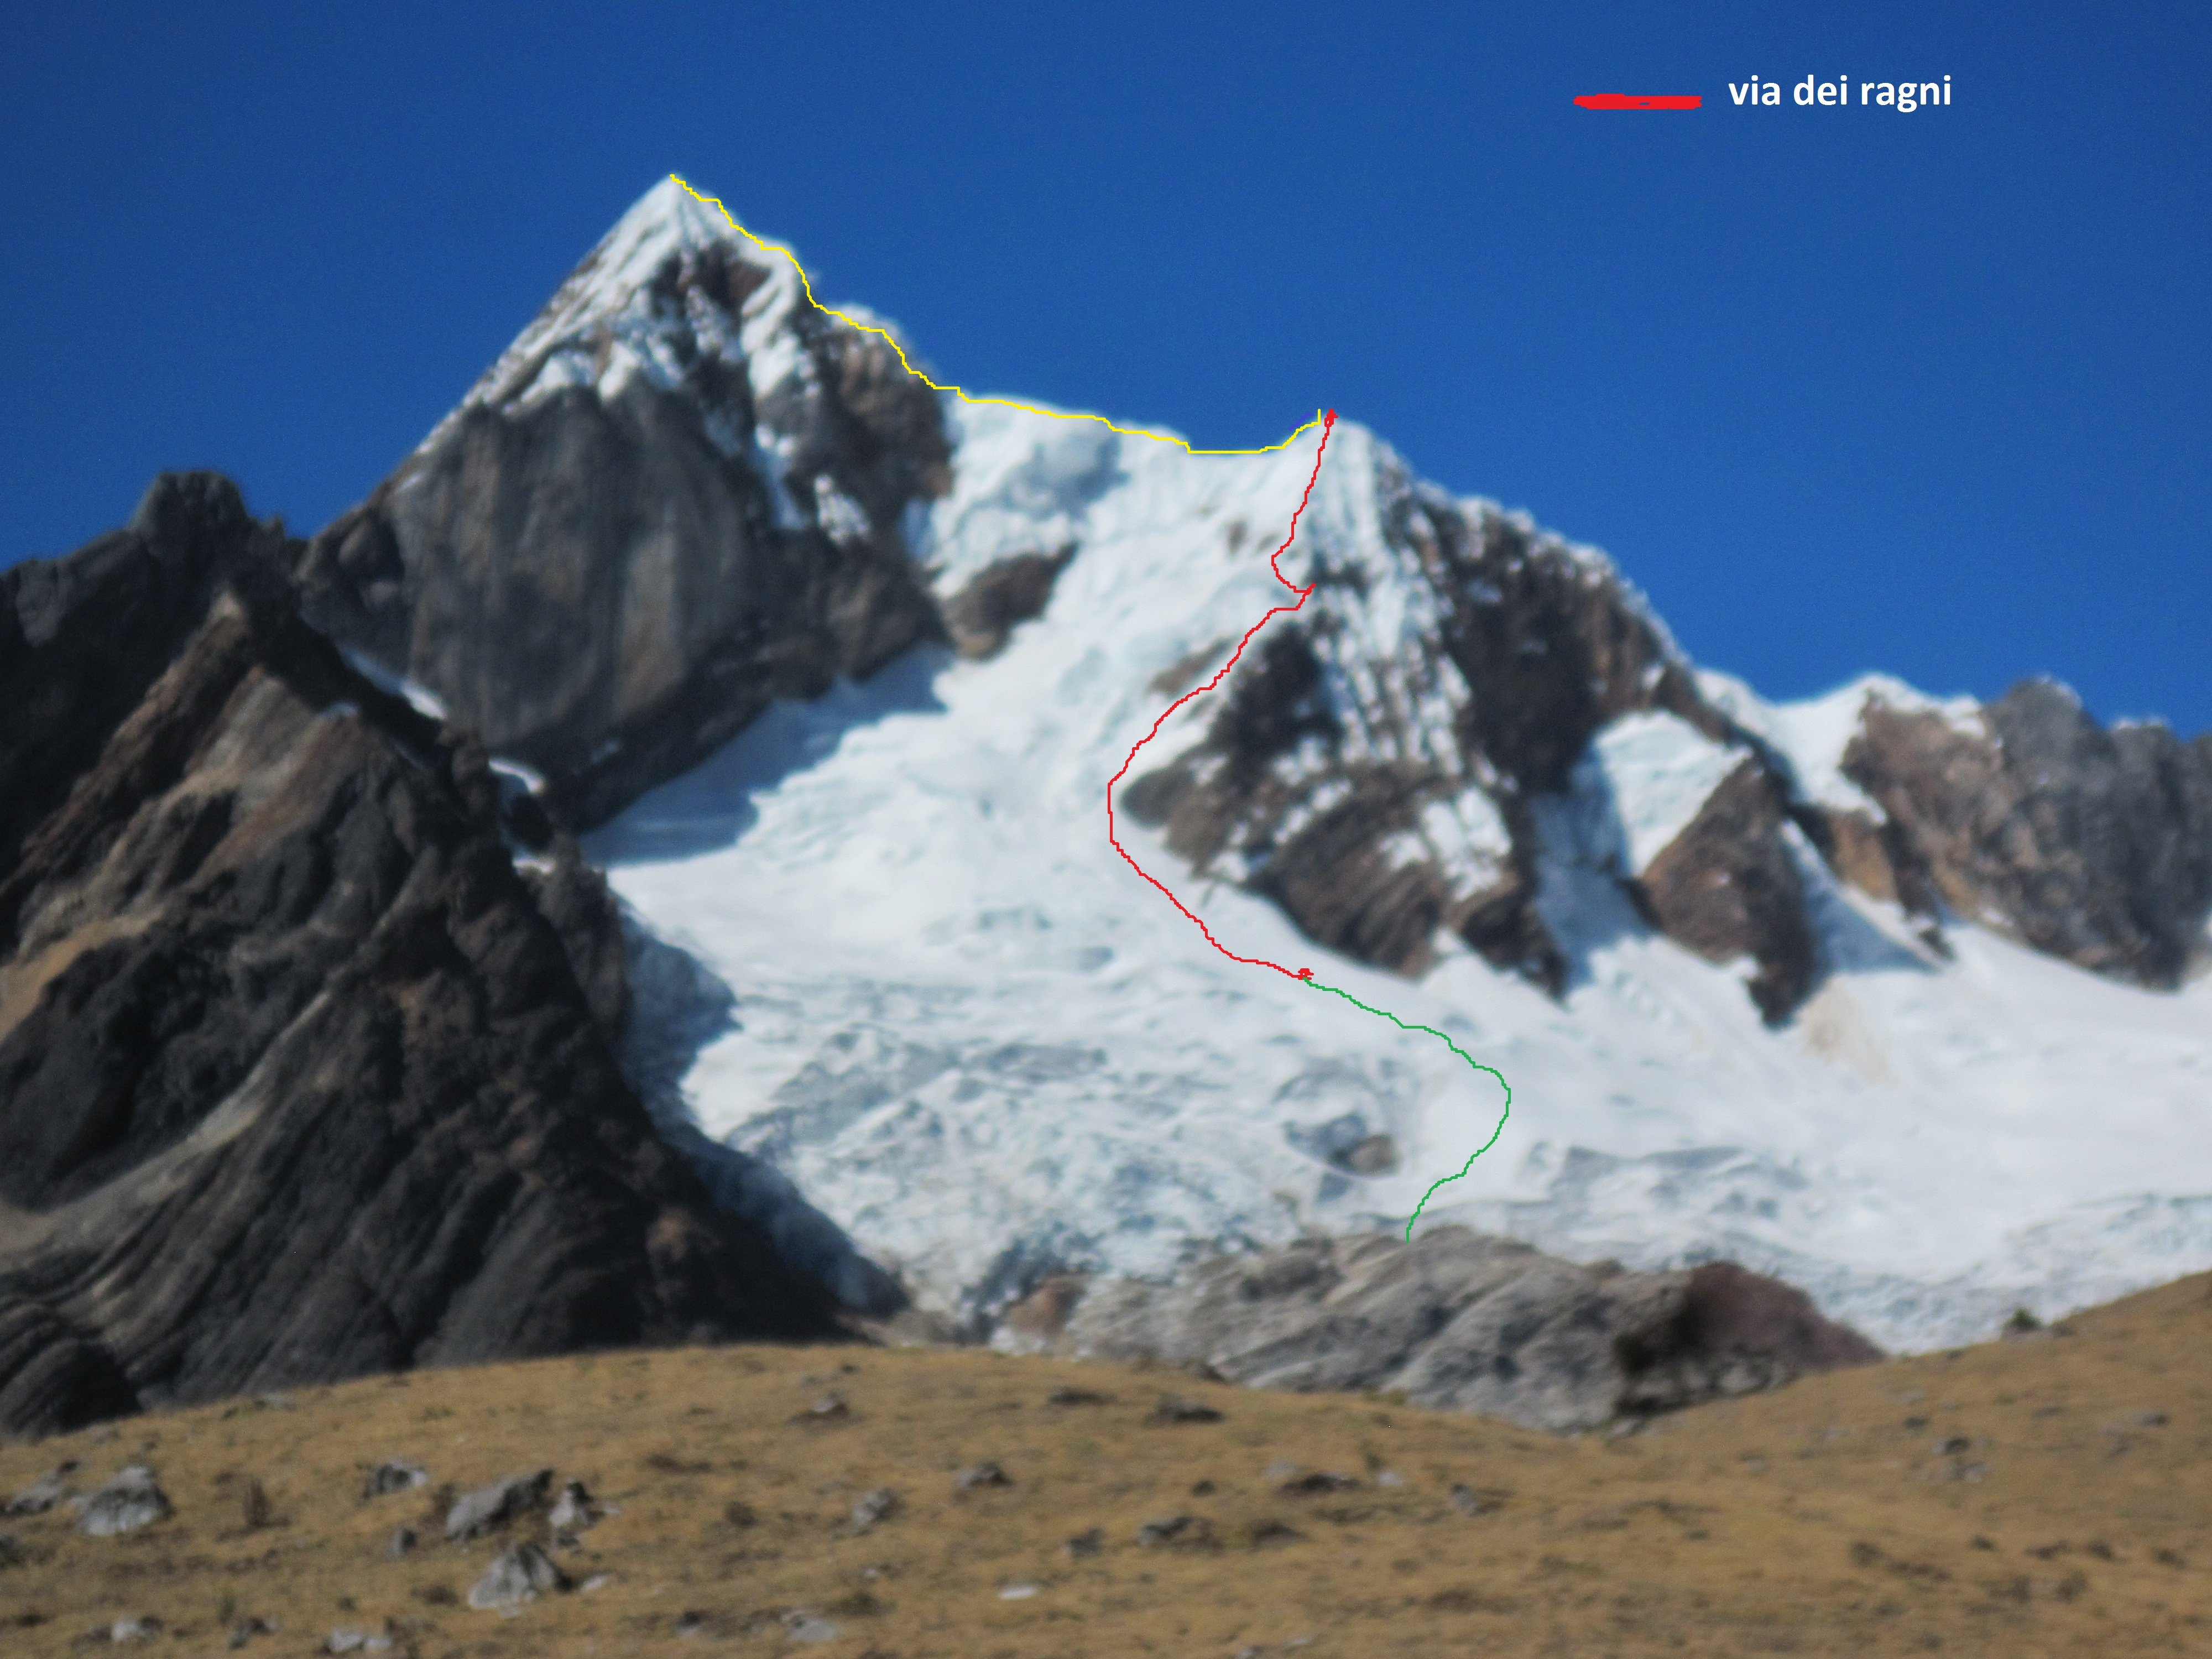 Via Del Ragni (400m, D+ 90°) on the northeast face of Jirishanca Chico (red line). The yellow line indicates how one would continue up the west ridge, however the team did not reach the summit.